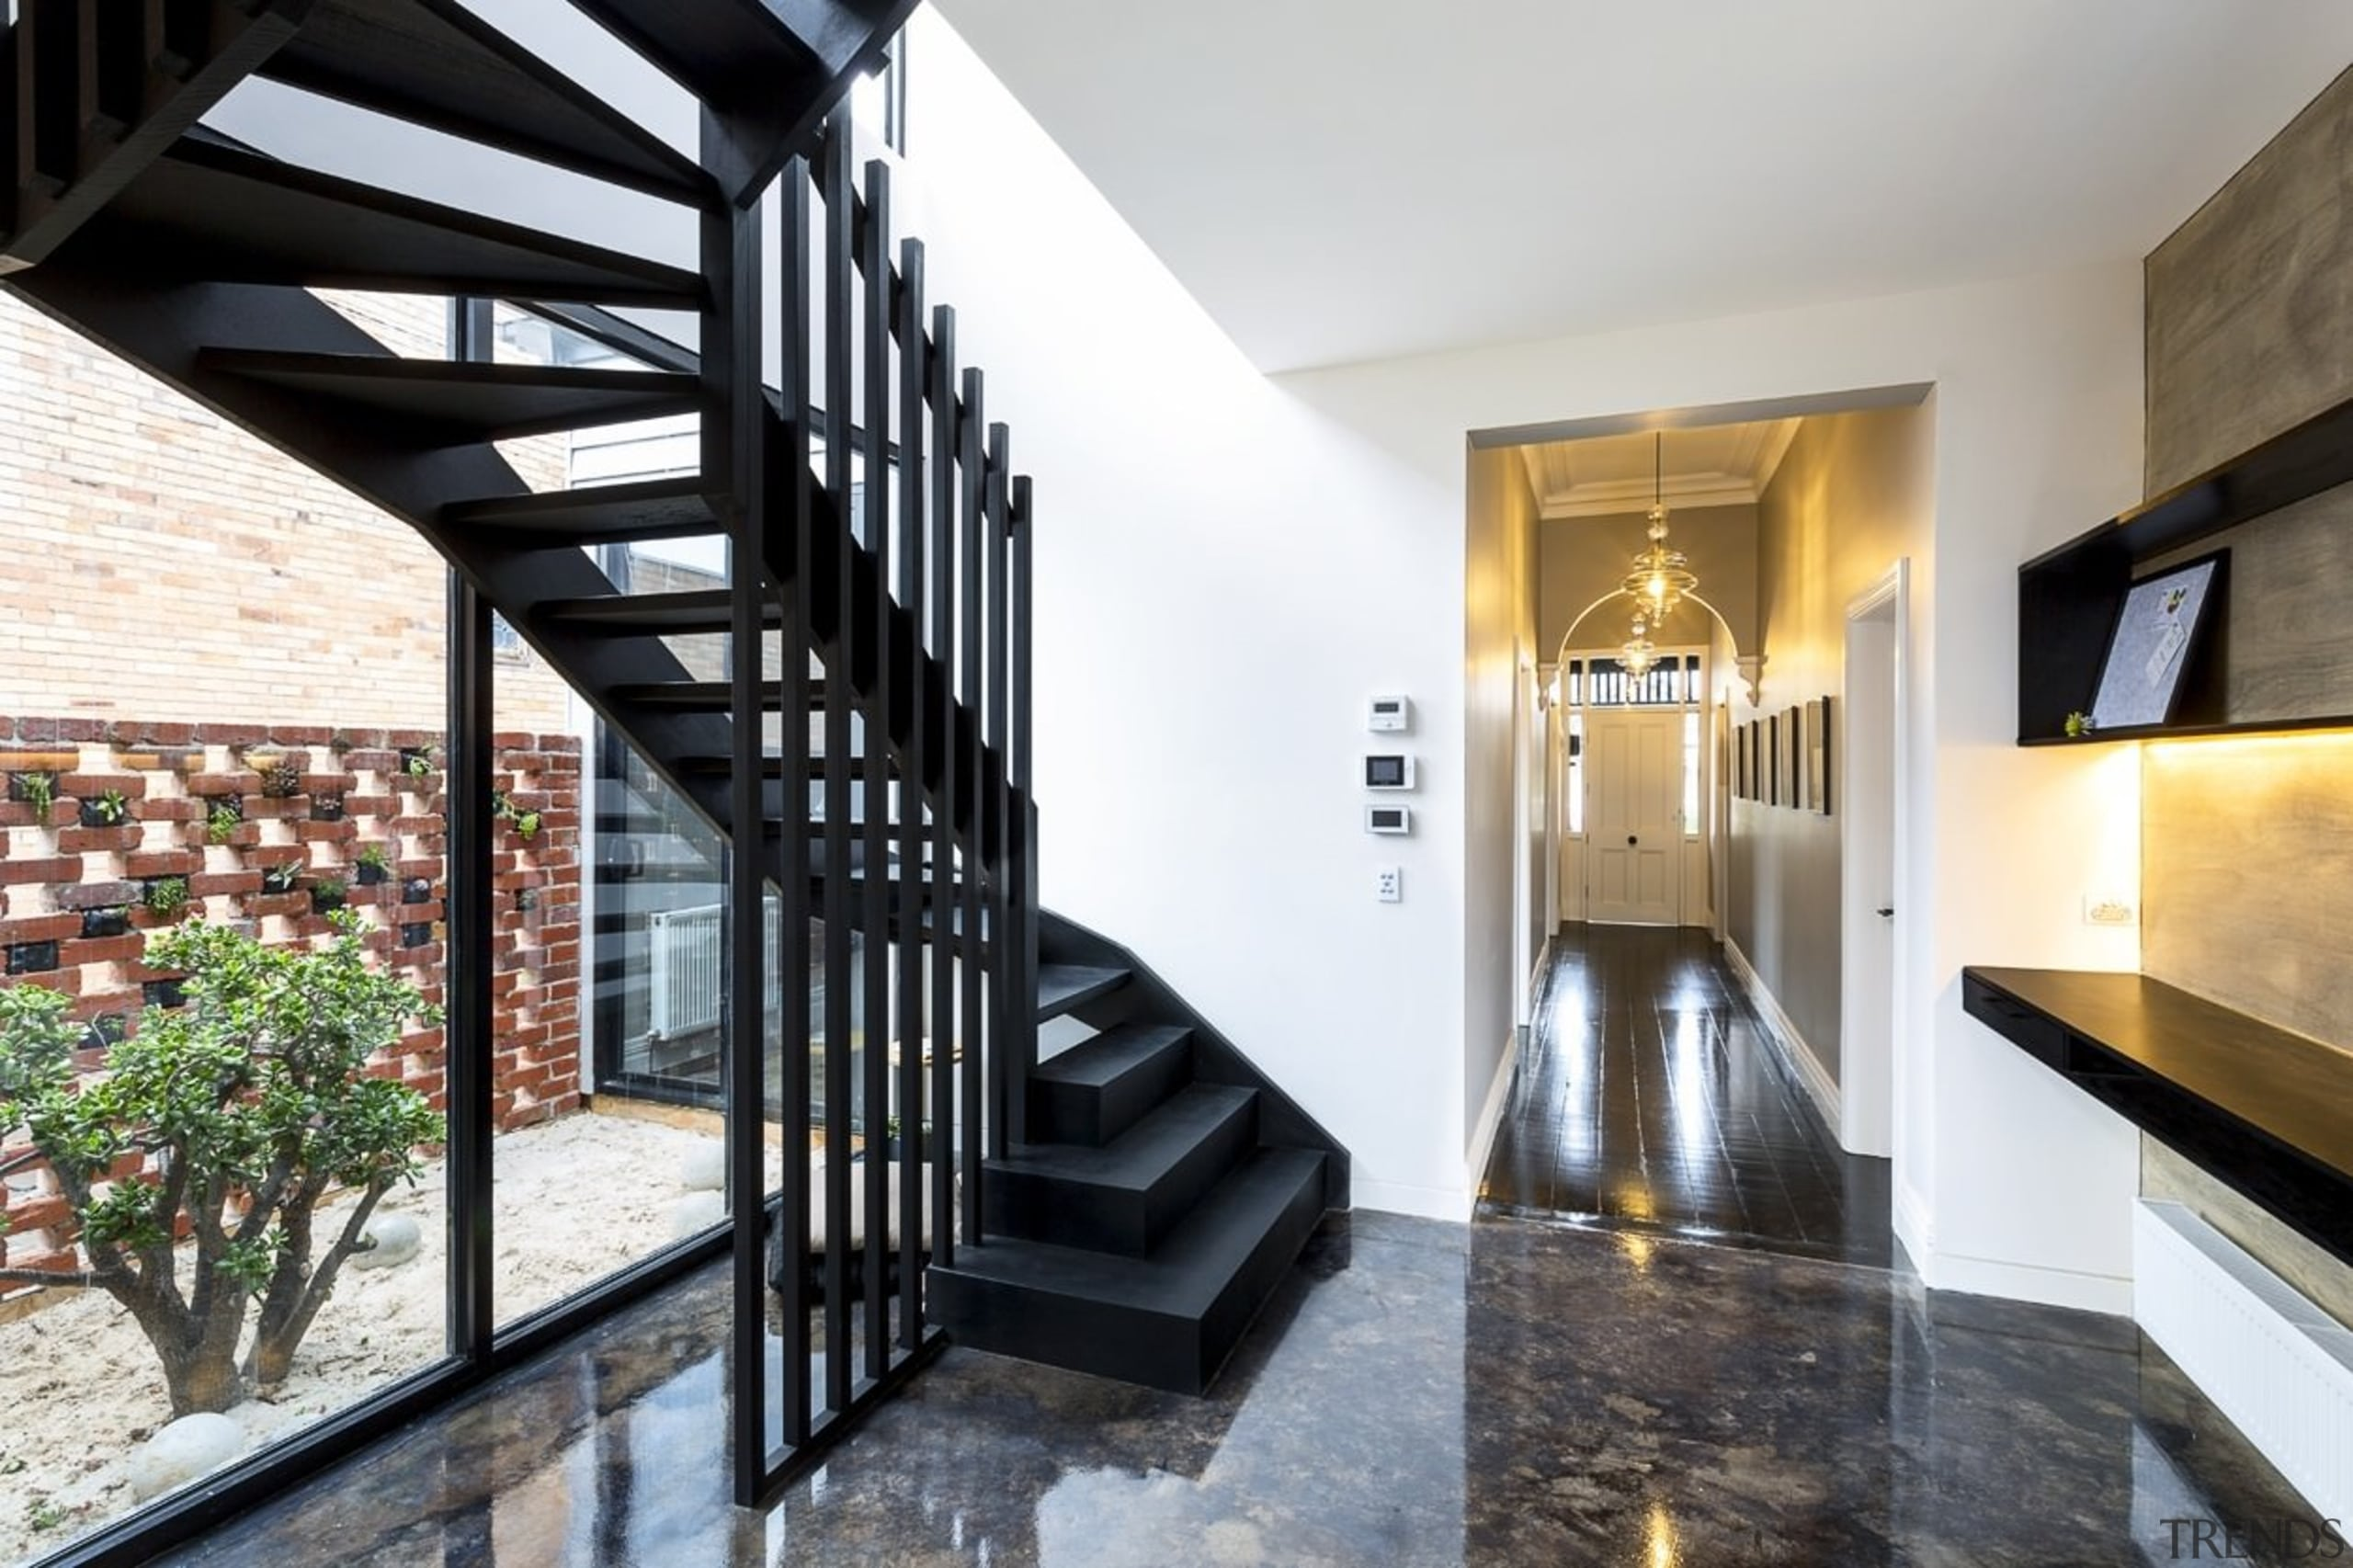 These windows flood the stairway and hallway with architecture, estate, handrail, home, house, interior design, property, real estate, stairs, white, black